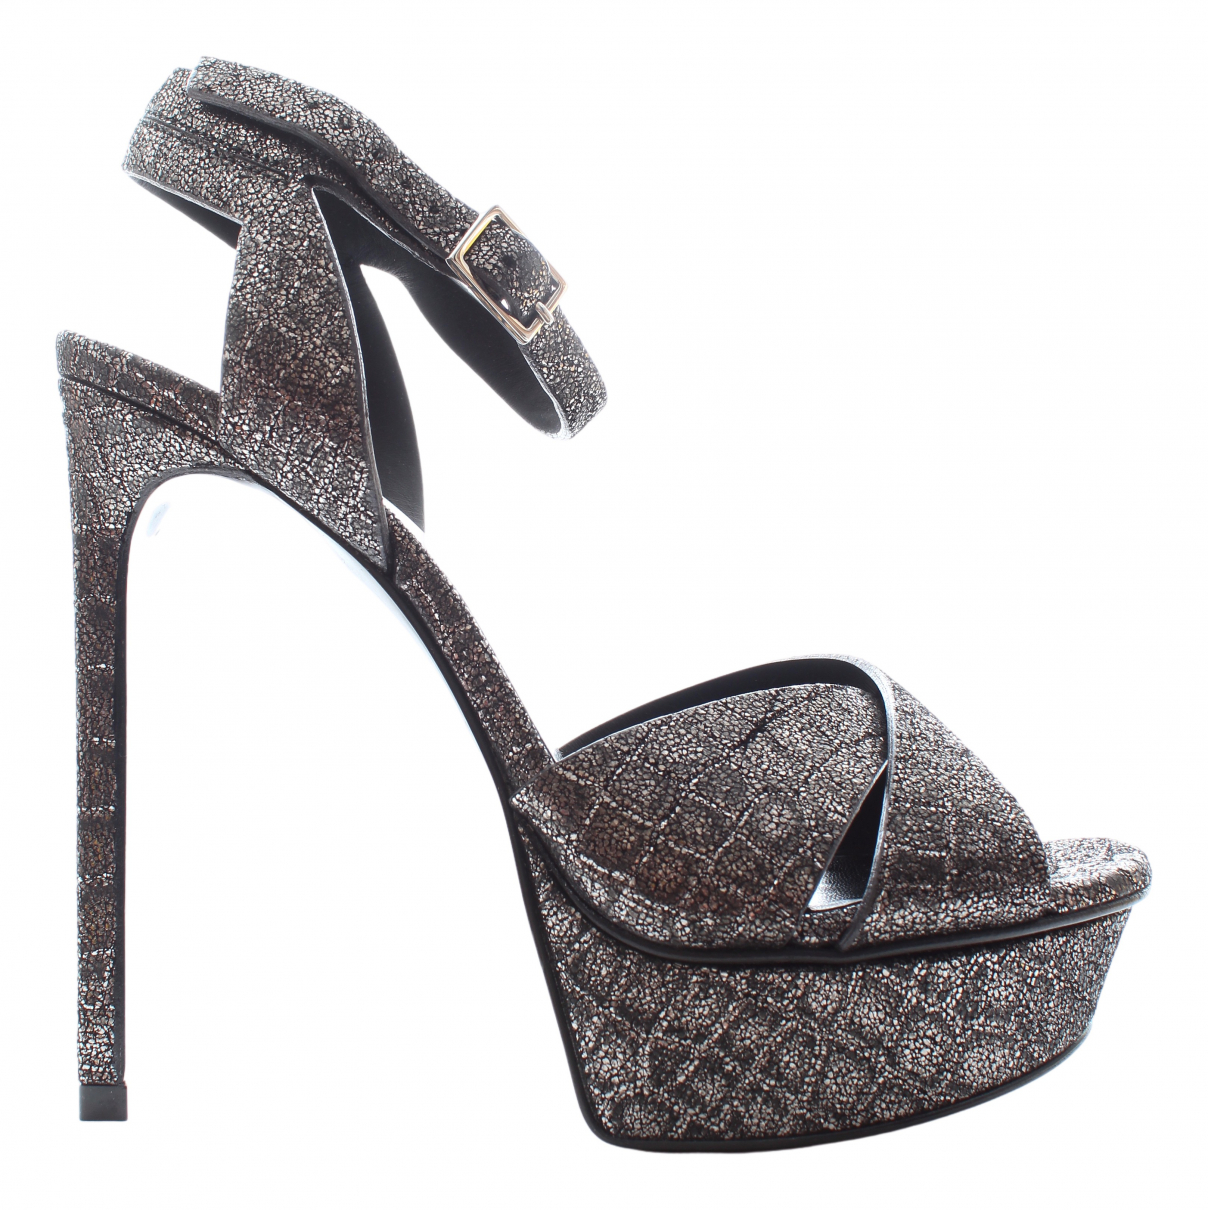 Saint Laurent Bianca Sandalen in  Metallic Leder